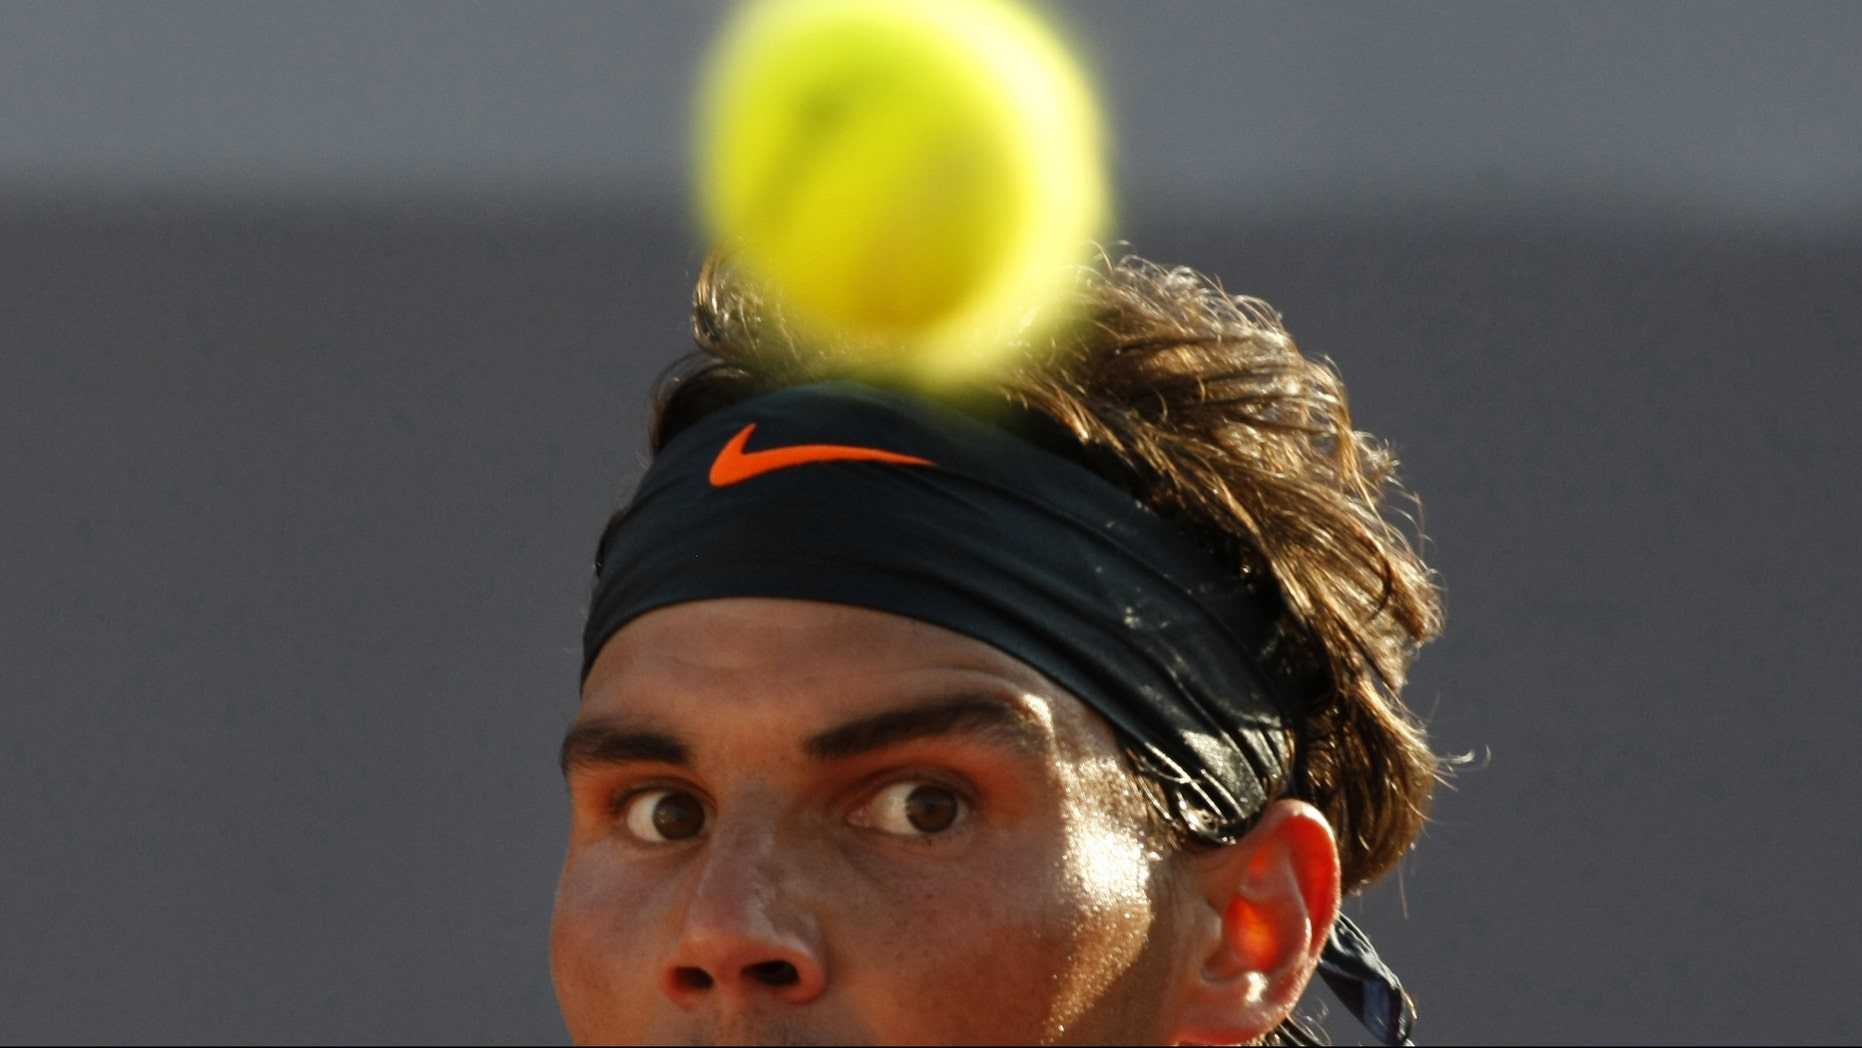 Spain's Rafael Nadal eyes the ball during his match against Spain's Daniel Gimeno-Traver at the  VTR Open in Vina del Mar, Chile,  Friday, Feb. 8, 2013.